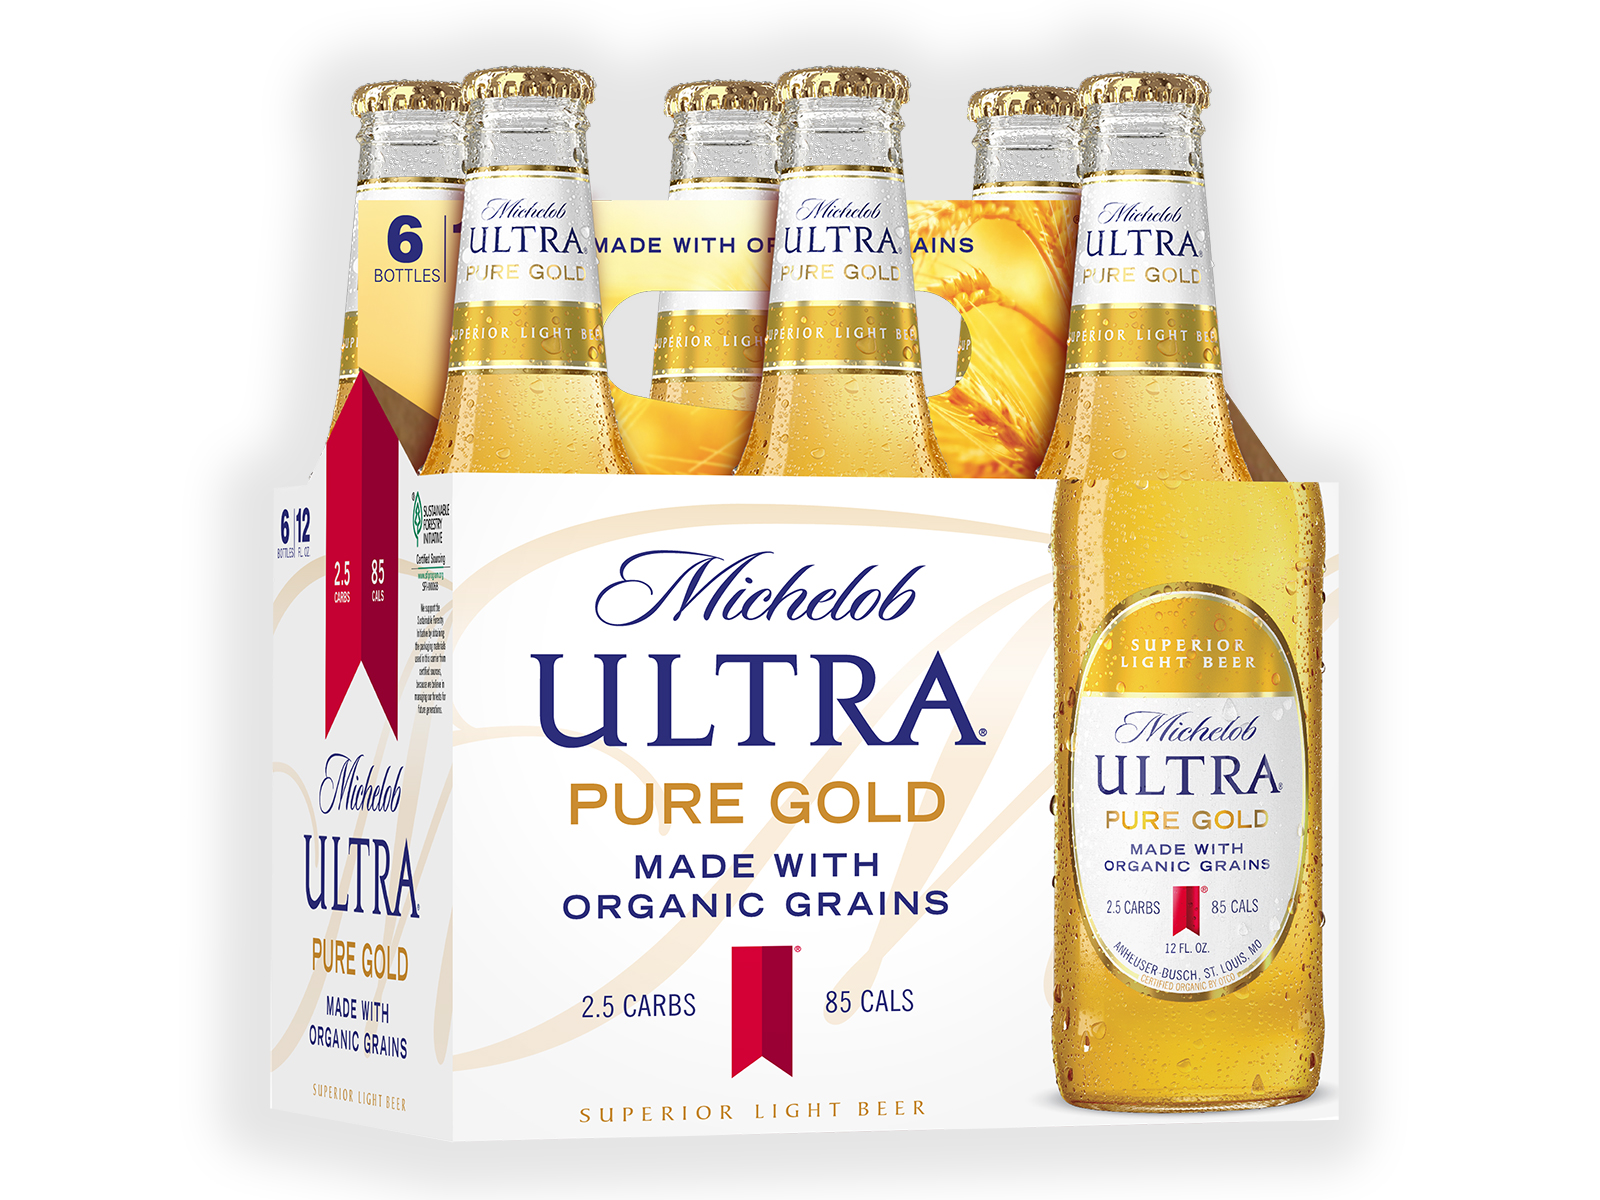 pack of beer made with organic grains